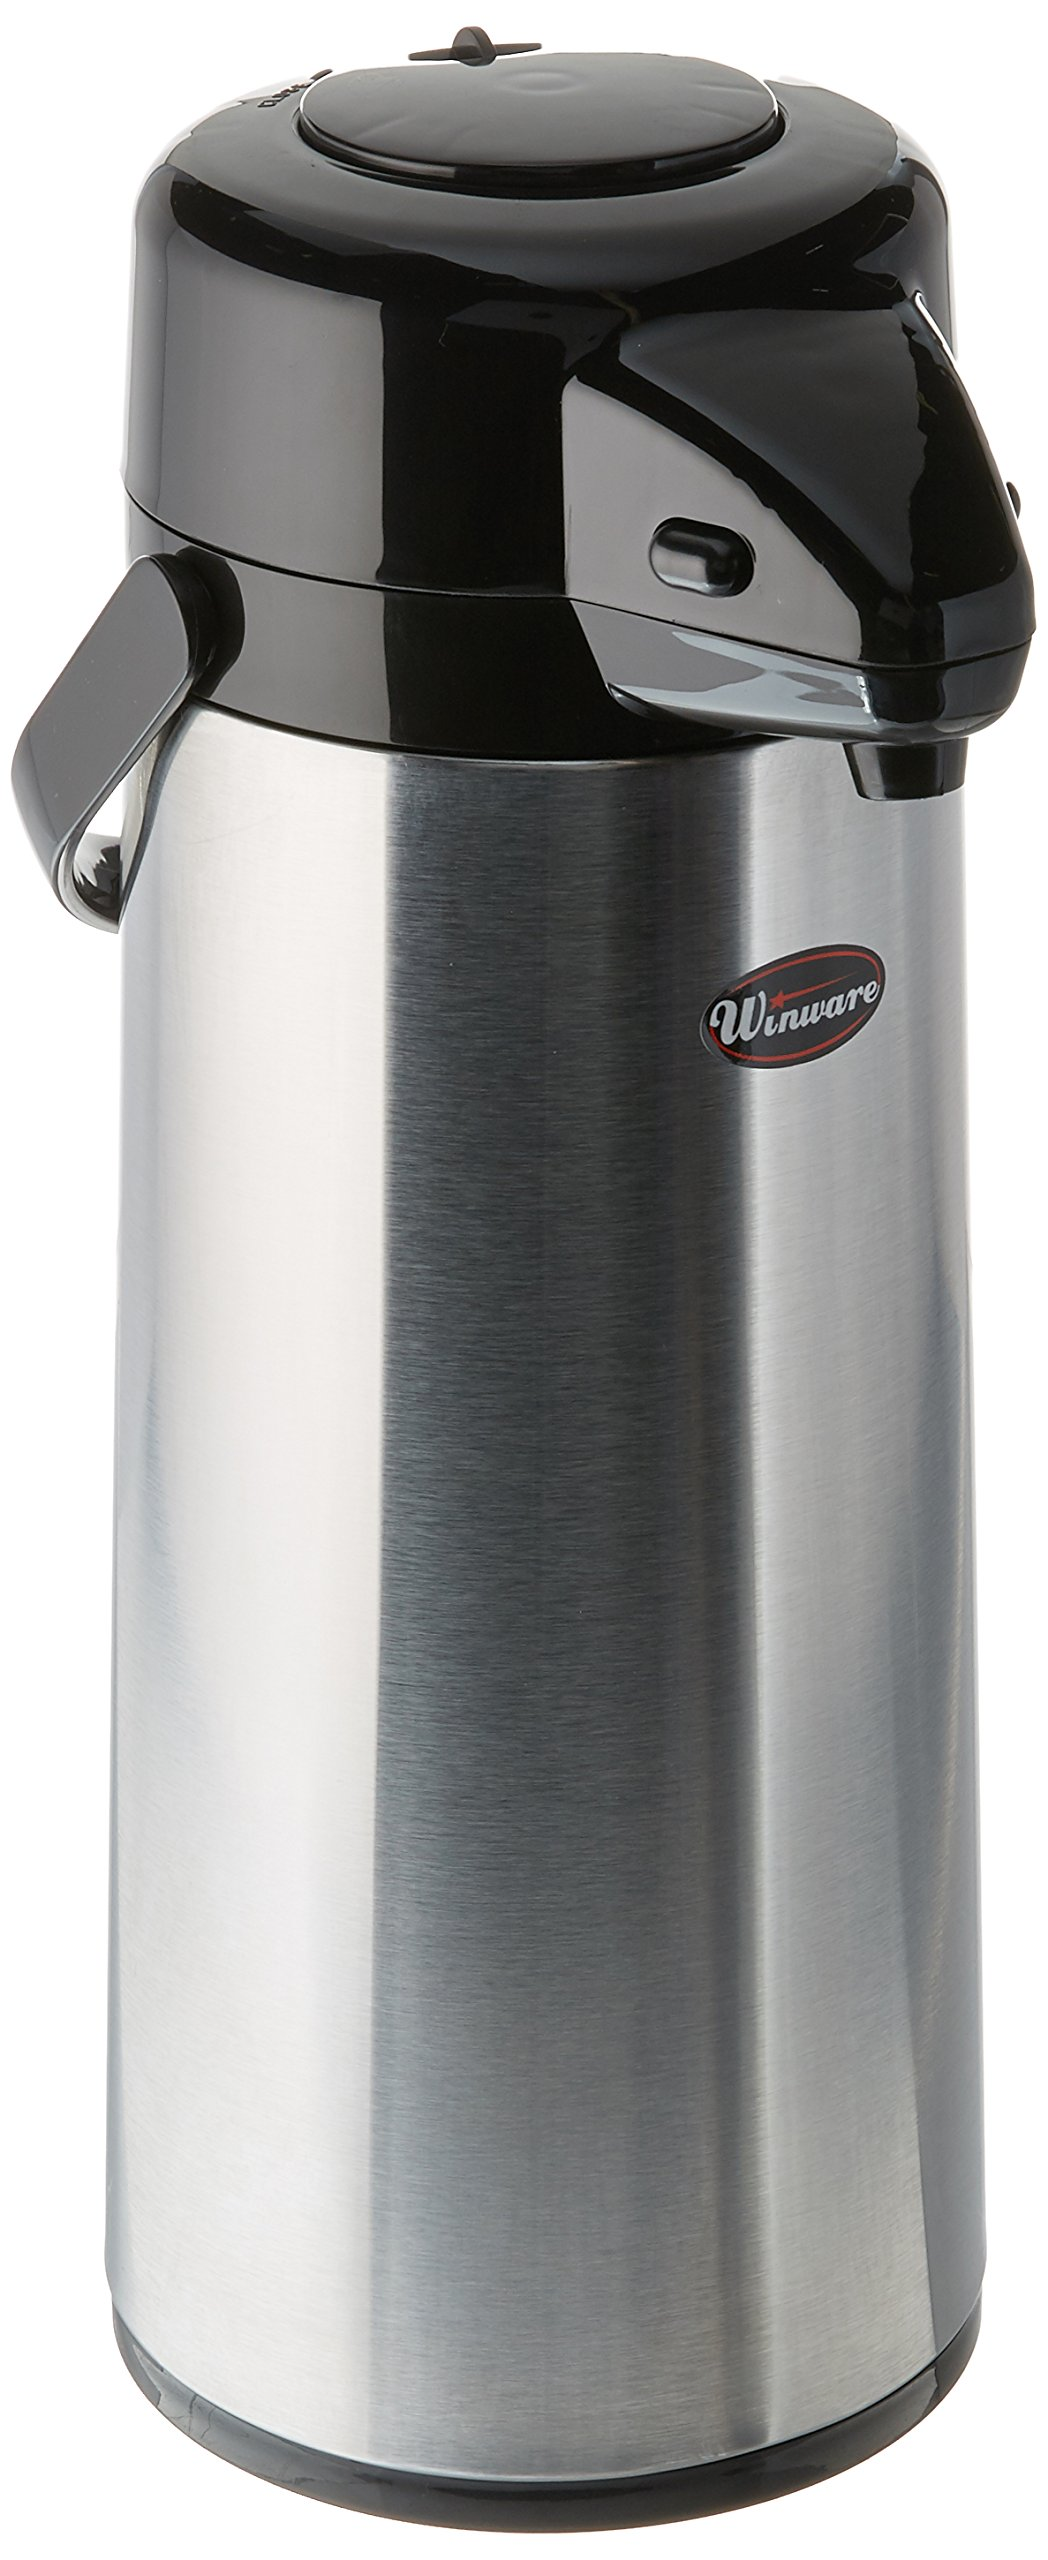 Winco 2.5 Liter Glass Lined Airpot, Push Button by Winco (Image #1)